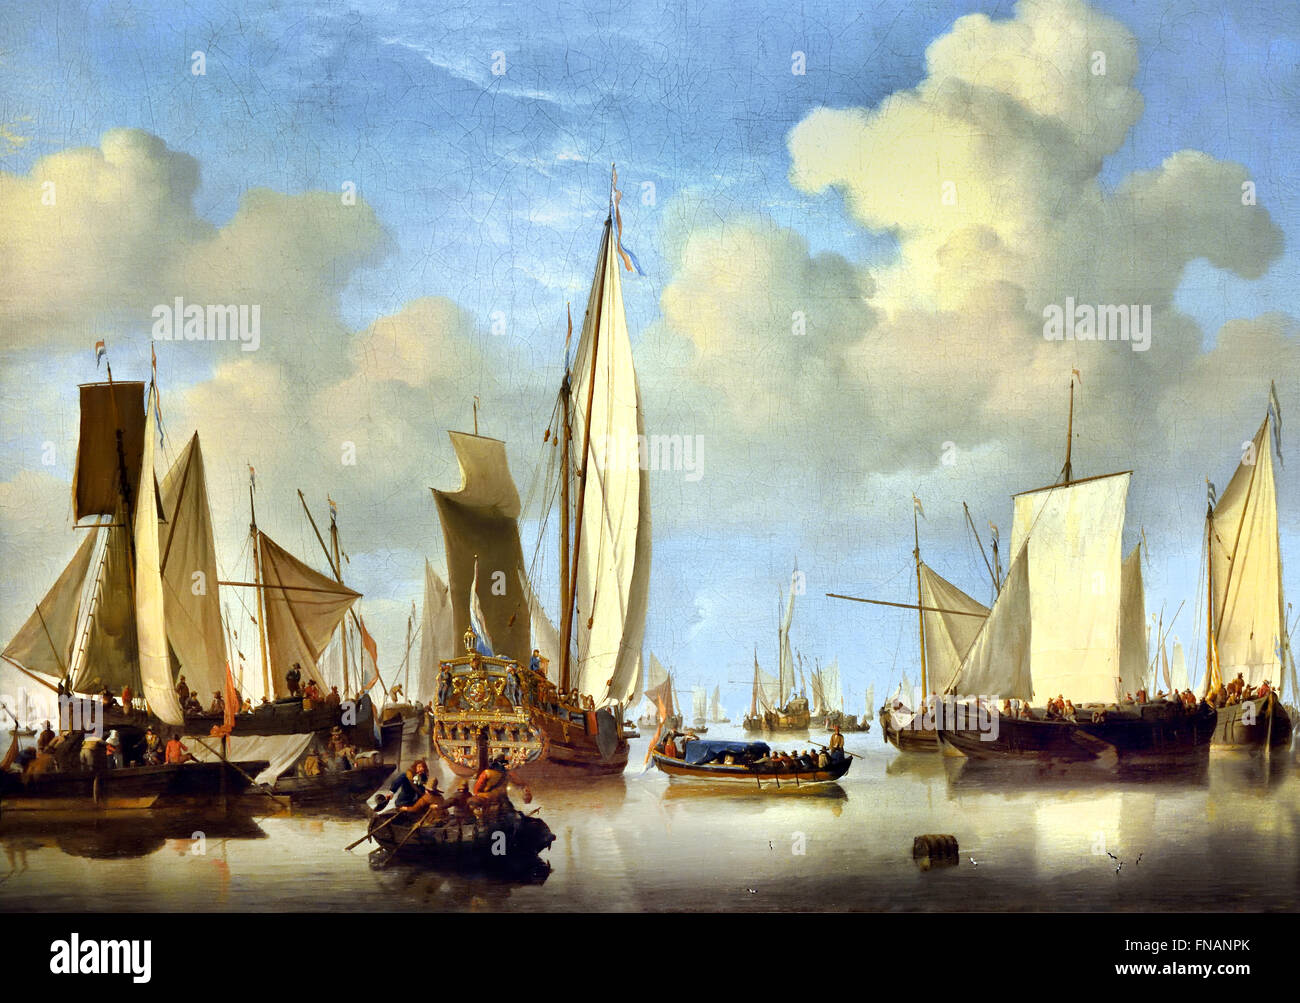 Ships in the Roads Willem van de Velde II 1633 -1707 Dutch Netherlands Stock Photo